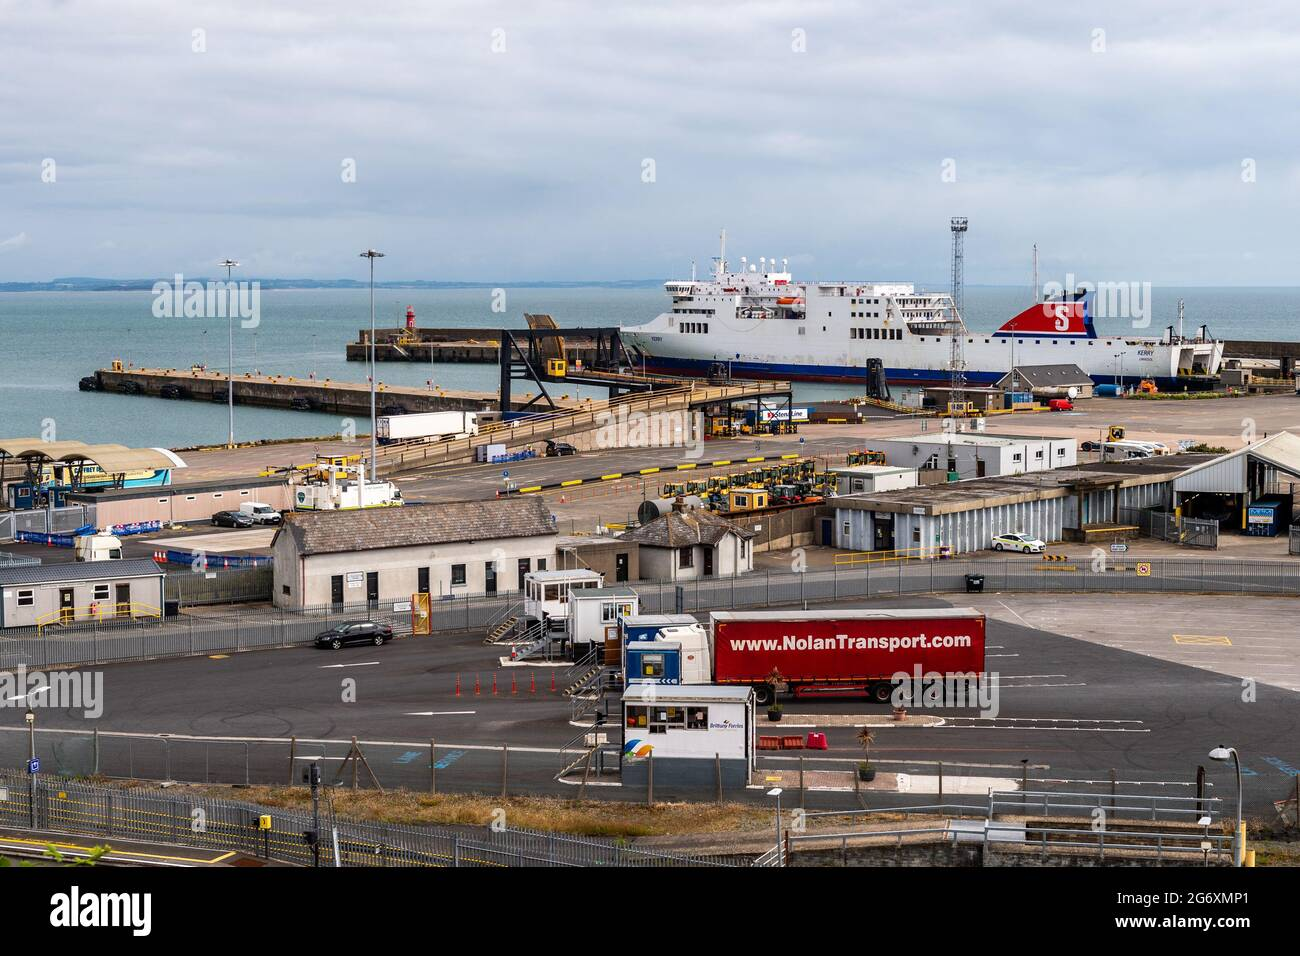 rosslaire-county-wexford-ireland-9th-july-2021-ro-ropassenger-ship-kerry-rests-at-rosslaire-europort-in-between-voyages-the-irish-revenue-has-been-physically-checking-4-of-freight-arriving-into-rosslaire-and-dublin-ports-since-brexit-in-january-credit-ag-newsalamy-live-news-2G6XMP1.jpg